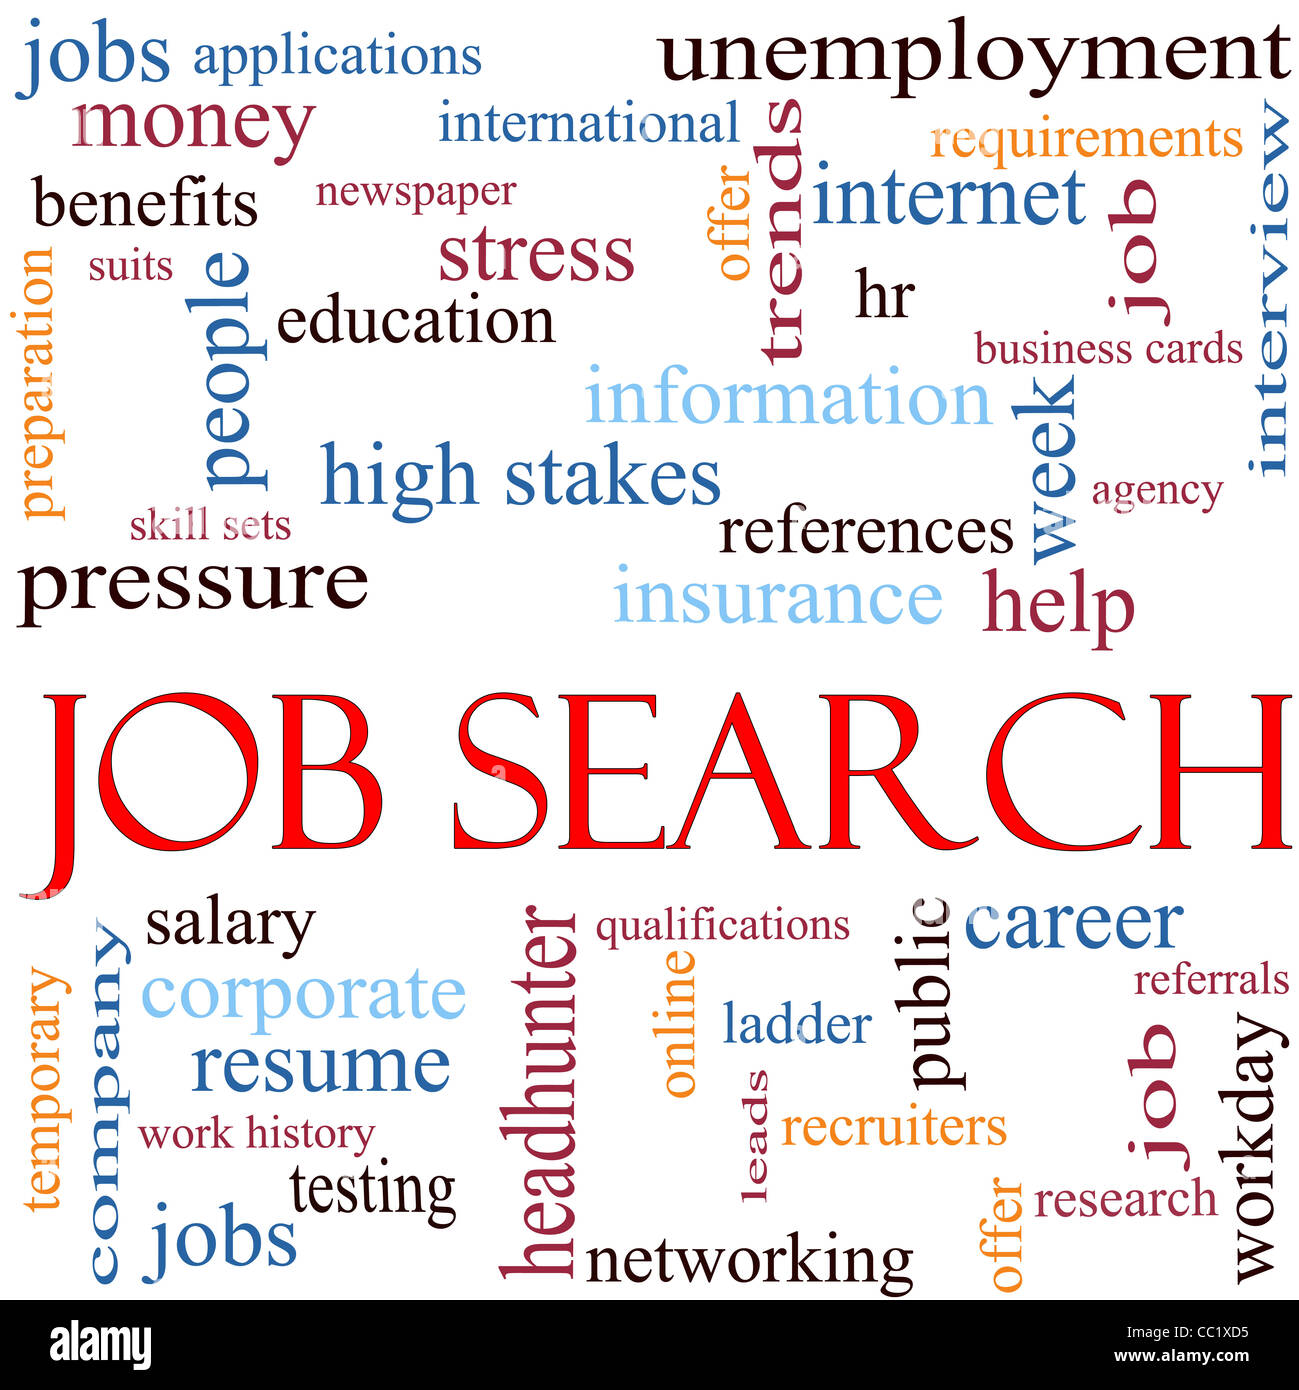 job search word cloud concept featuring terms such as networking headhunter job pressure help and many more